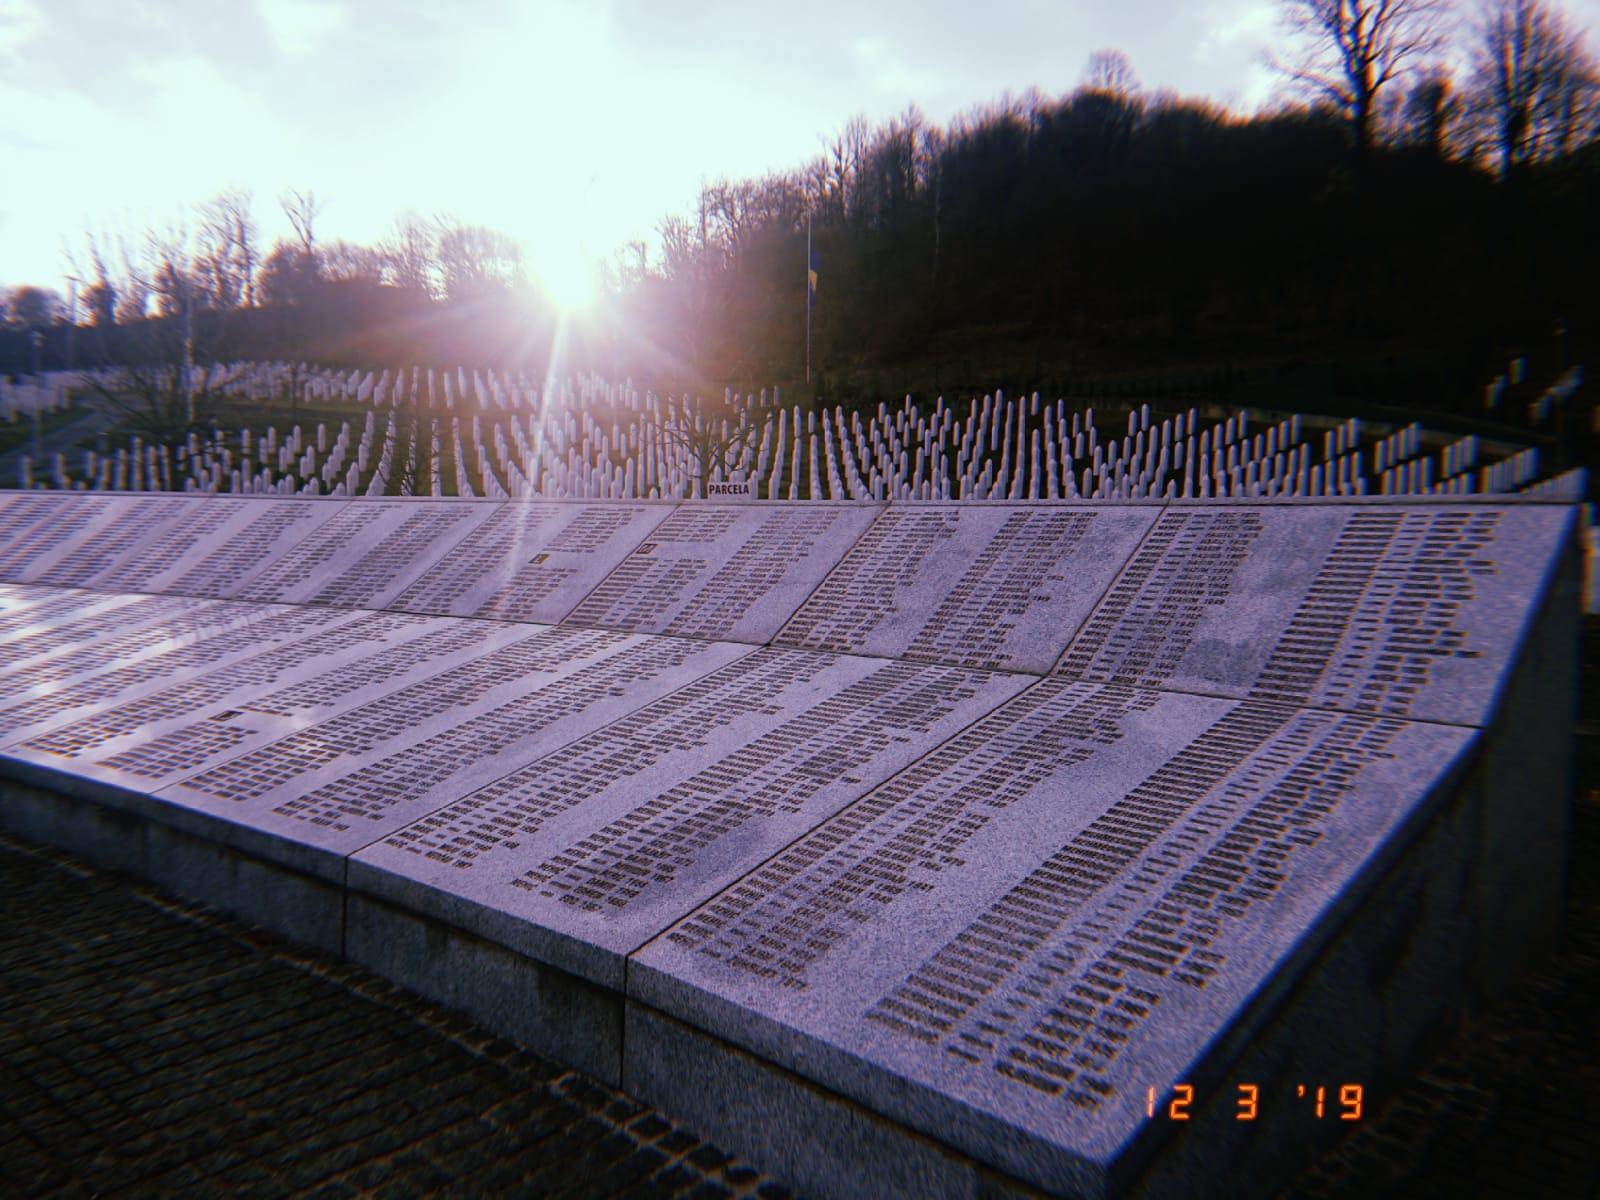 A long list of names of those who died in the Srebrenica Massacre listed on a stone structure. Behind the stone structure is a field with pointed tombstones spreading into the distance.